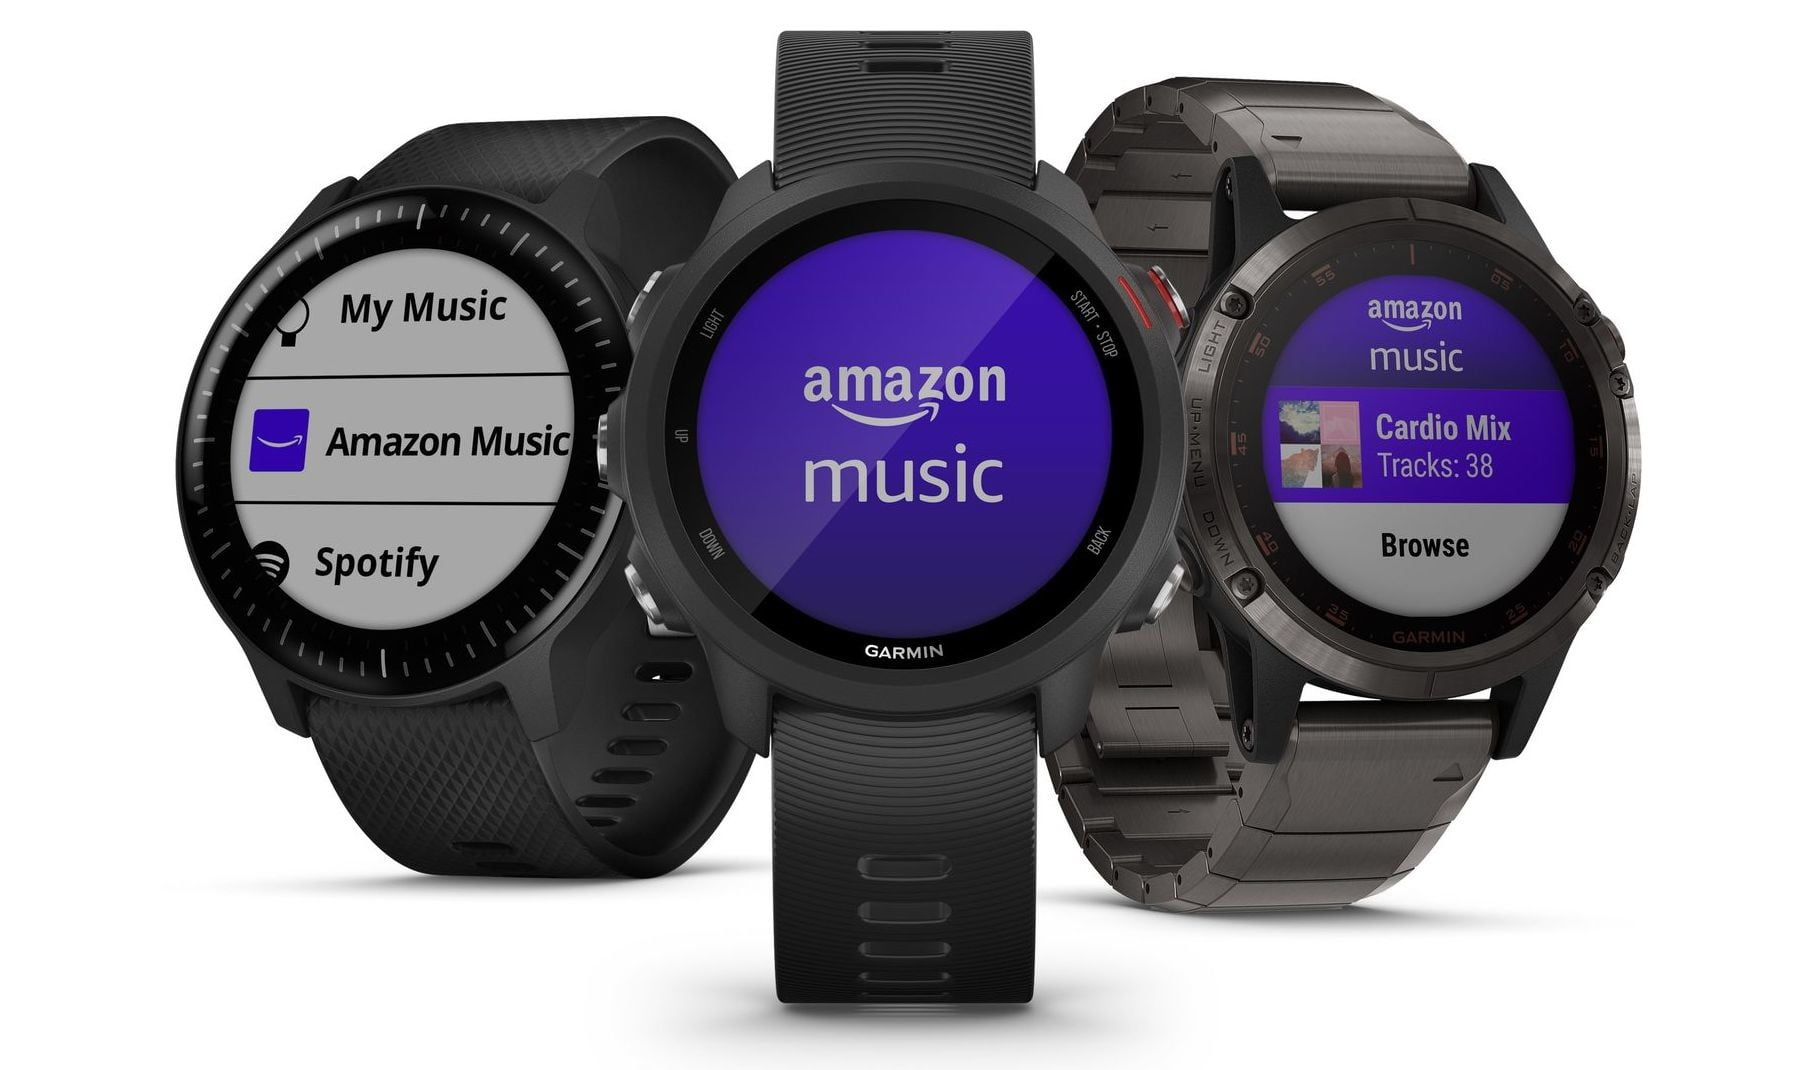 Garmin's fitness smartwatches are the first to offer Amazon Music